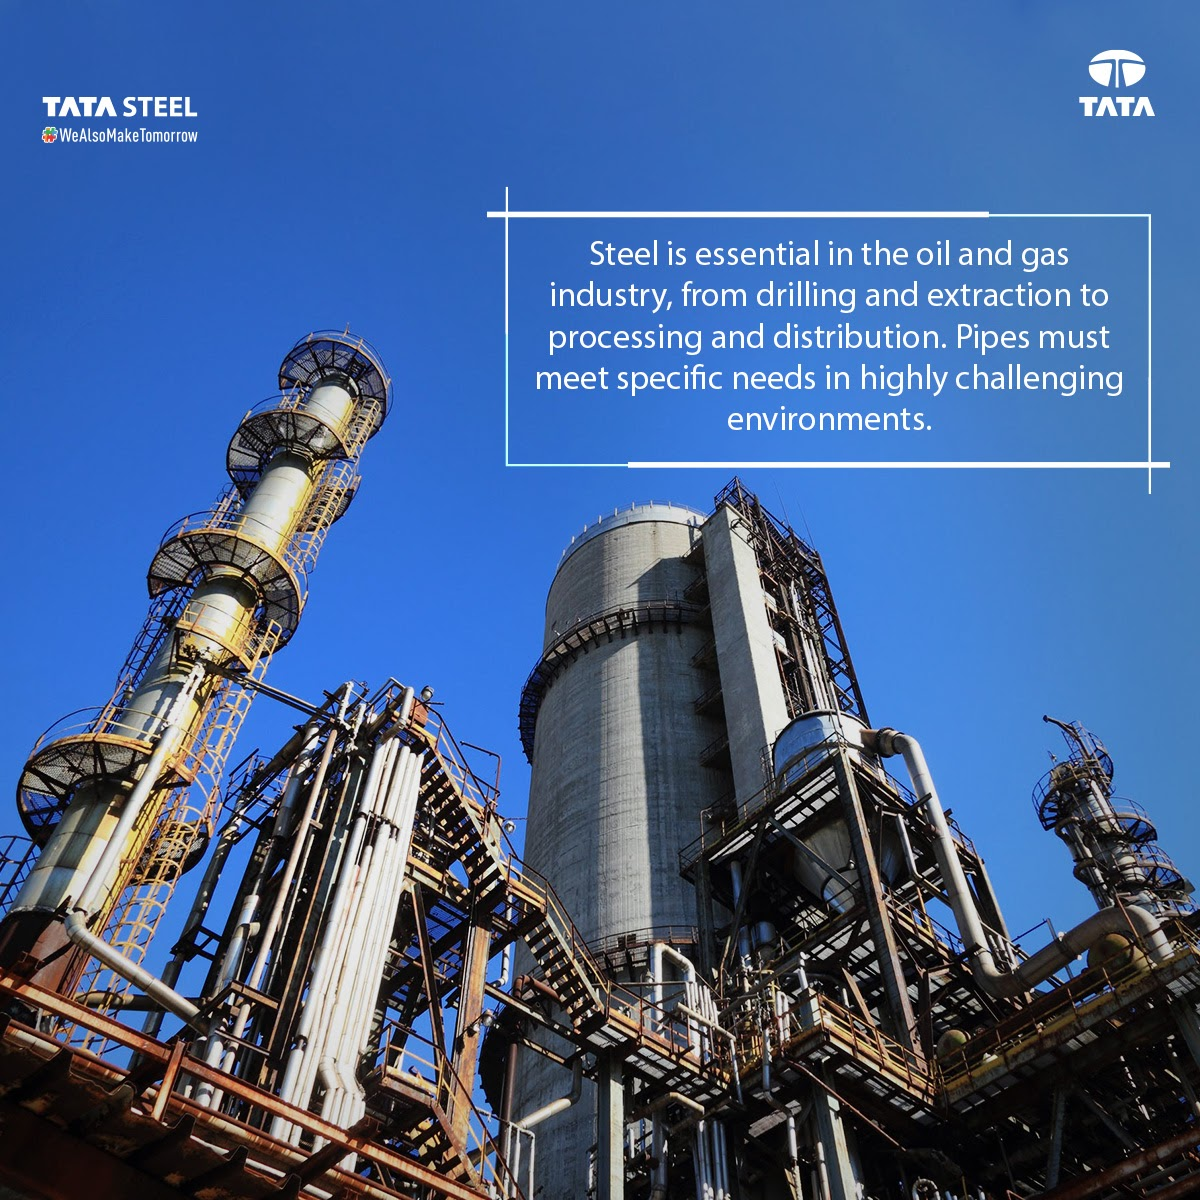 Tata Pipes, has played a crucial role in modernising our country.  With a great emphasis on the quality, all the tubes manufactured undergo various destructive & non-destructive quality assurance tests, to ensure product excellence.   #TataSteel #WeAlsoMakeTomorrow #SteelFacts https://t.co/mEZ3Mz7sl4